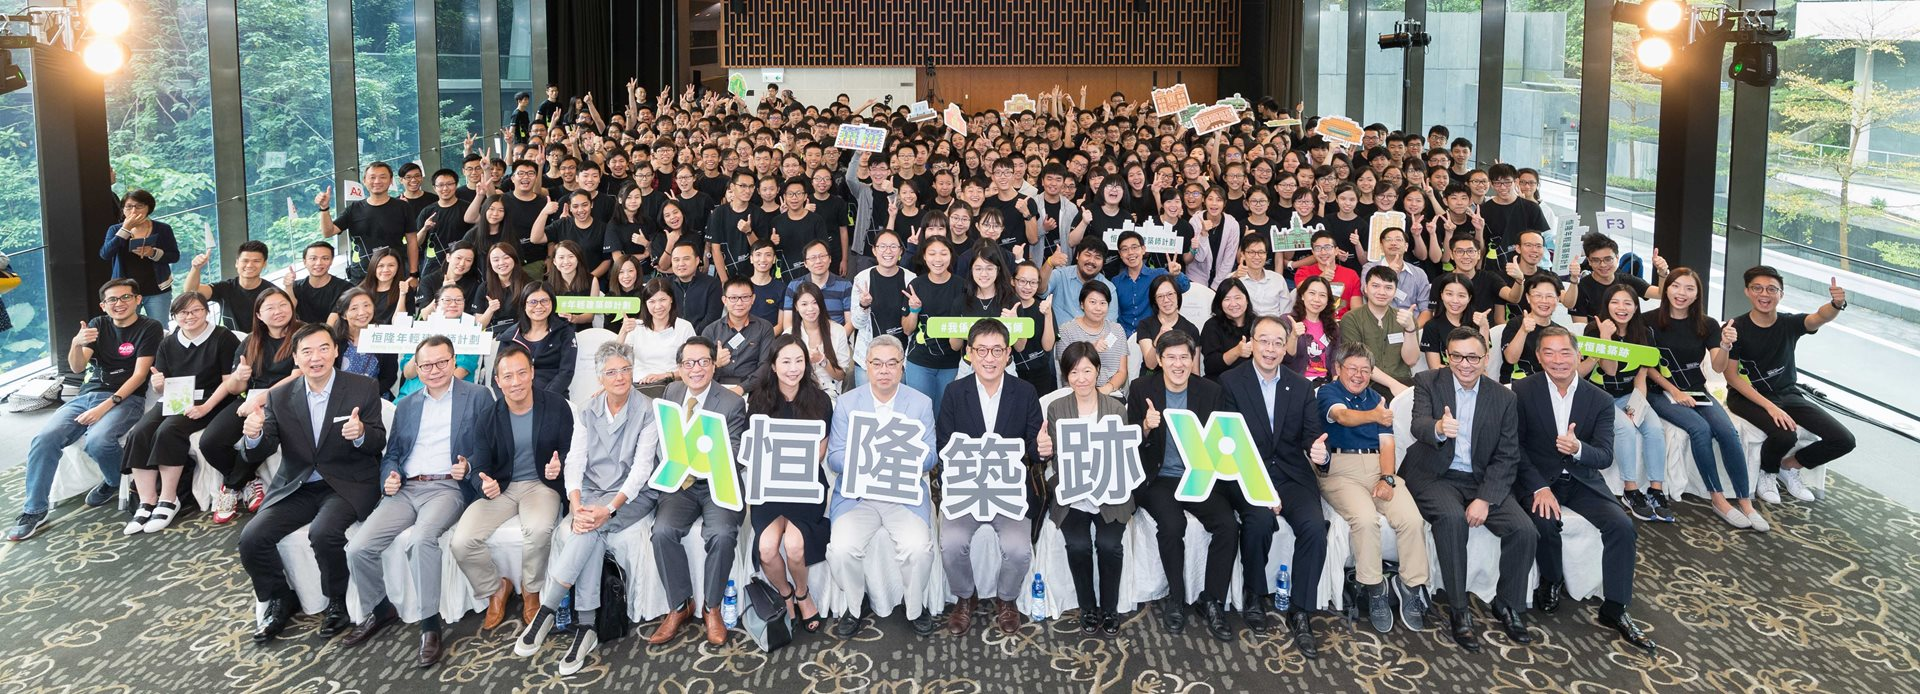 Over 320 Students Join The Hang Lung Young Architects Program